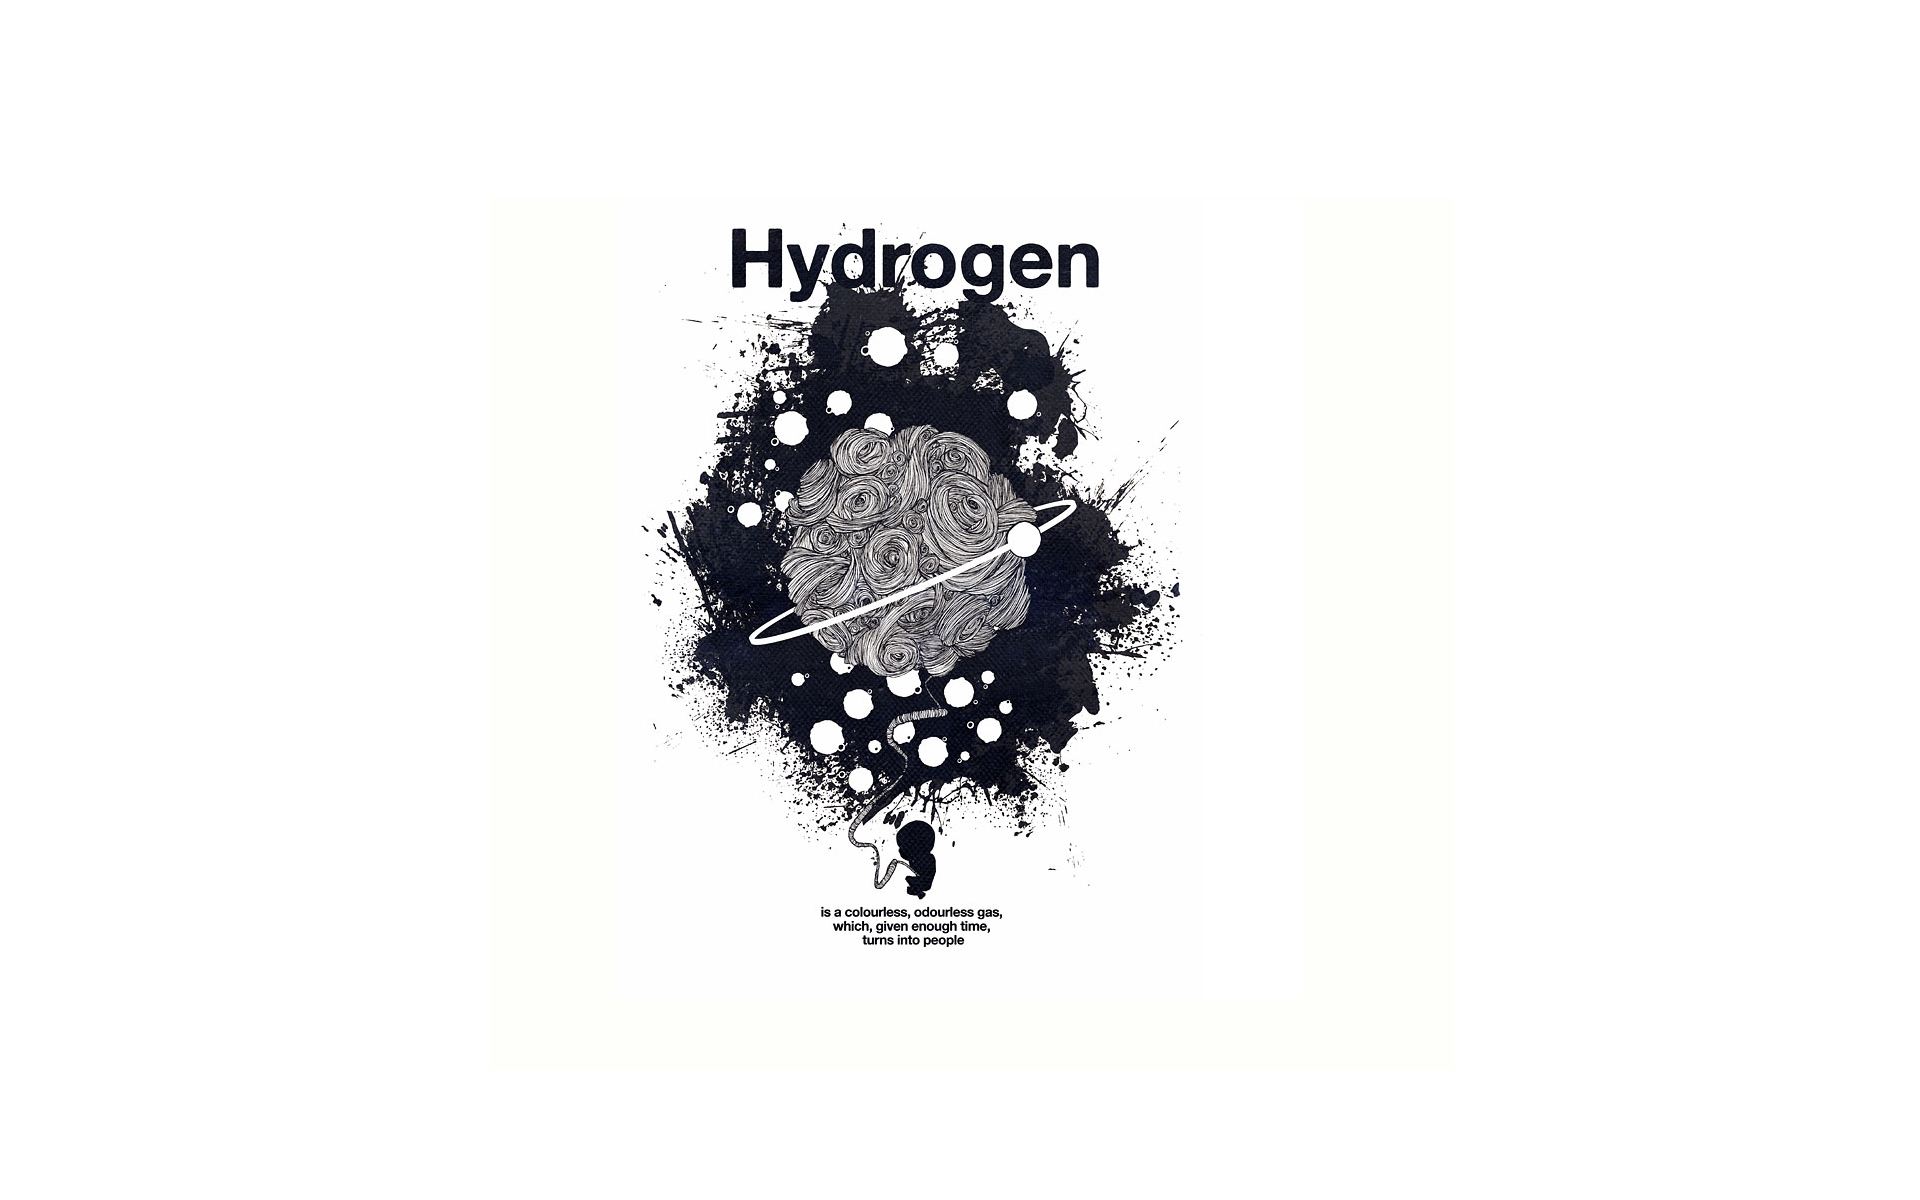 People gas hydrogen eventually HD Wallpaper